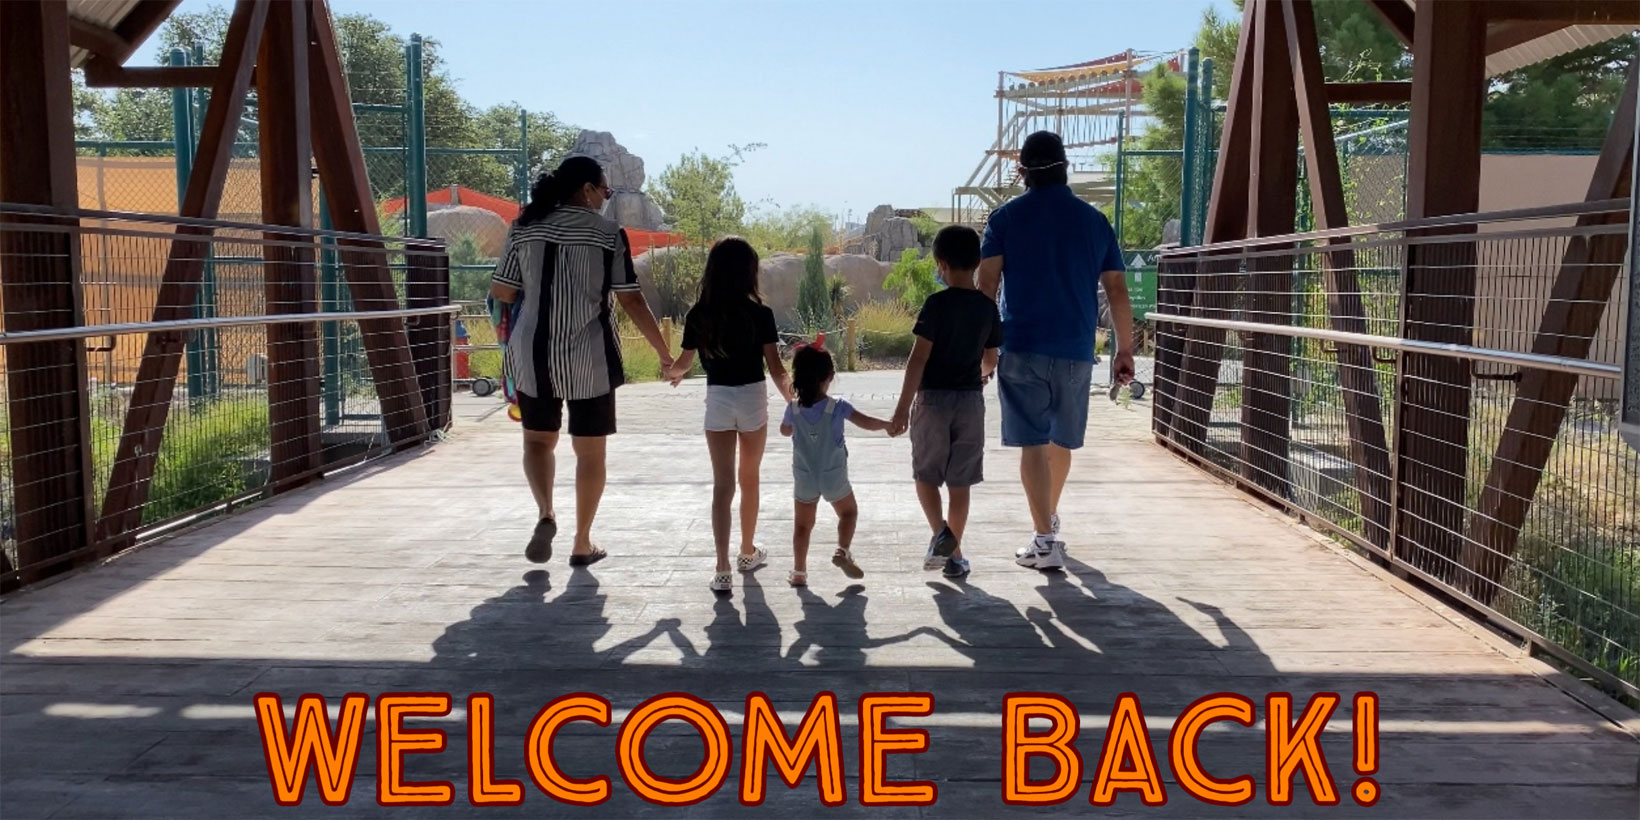 Welcome-Back-Image-optimized